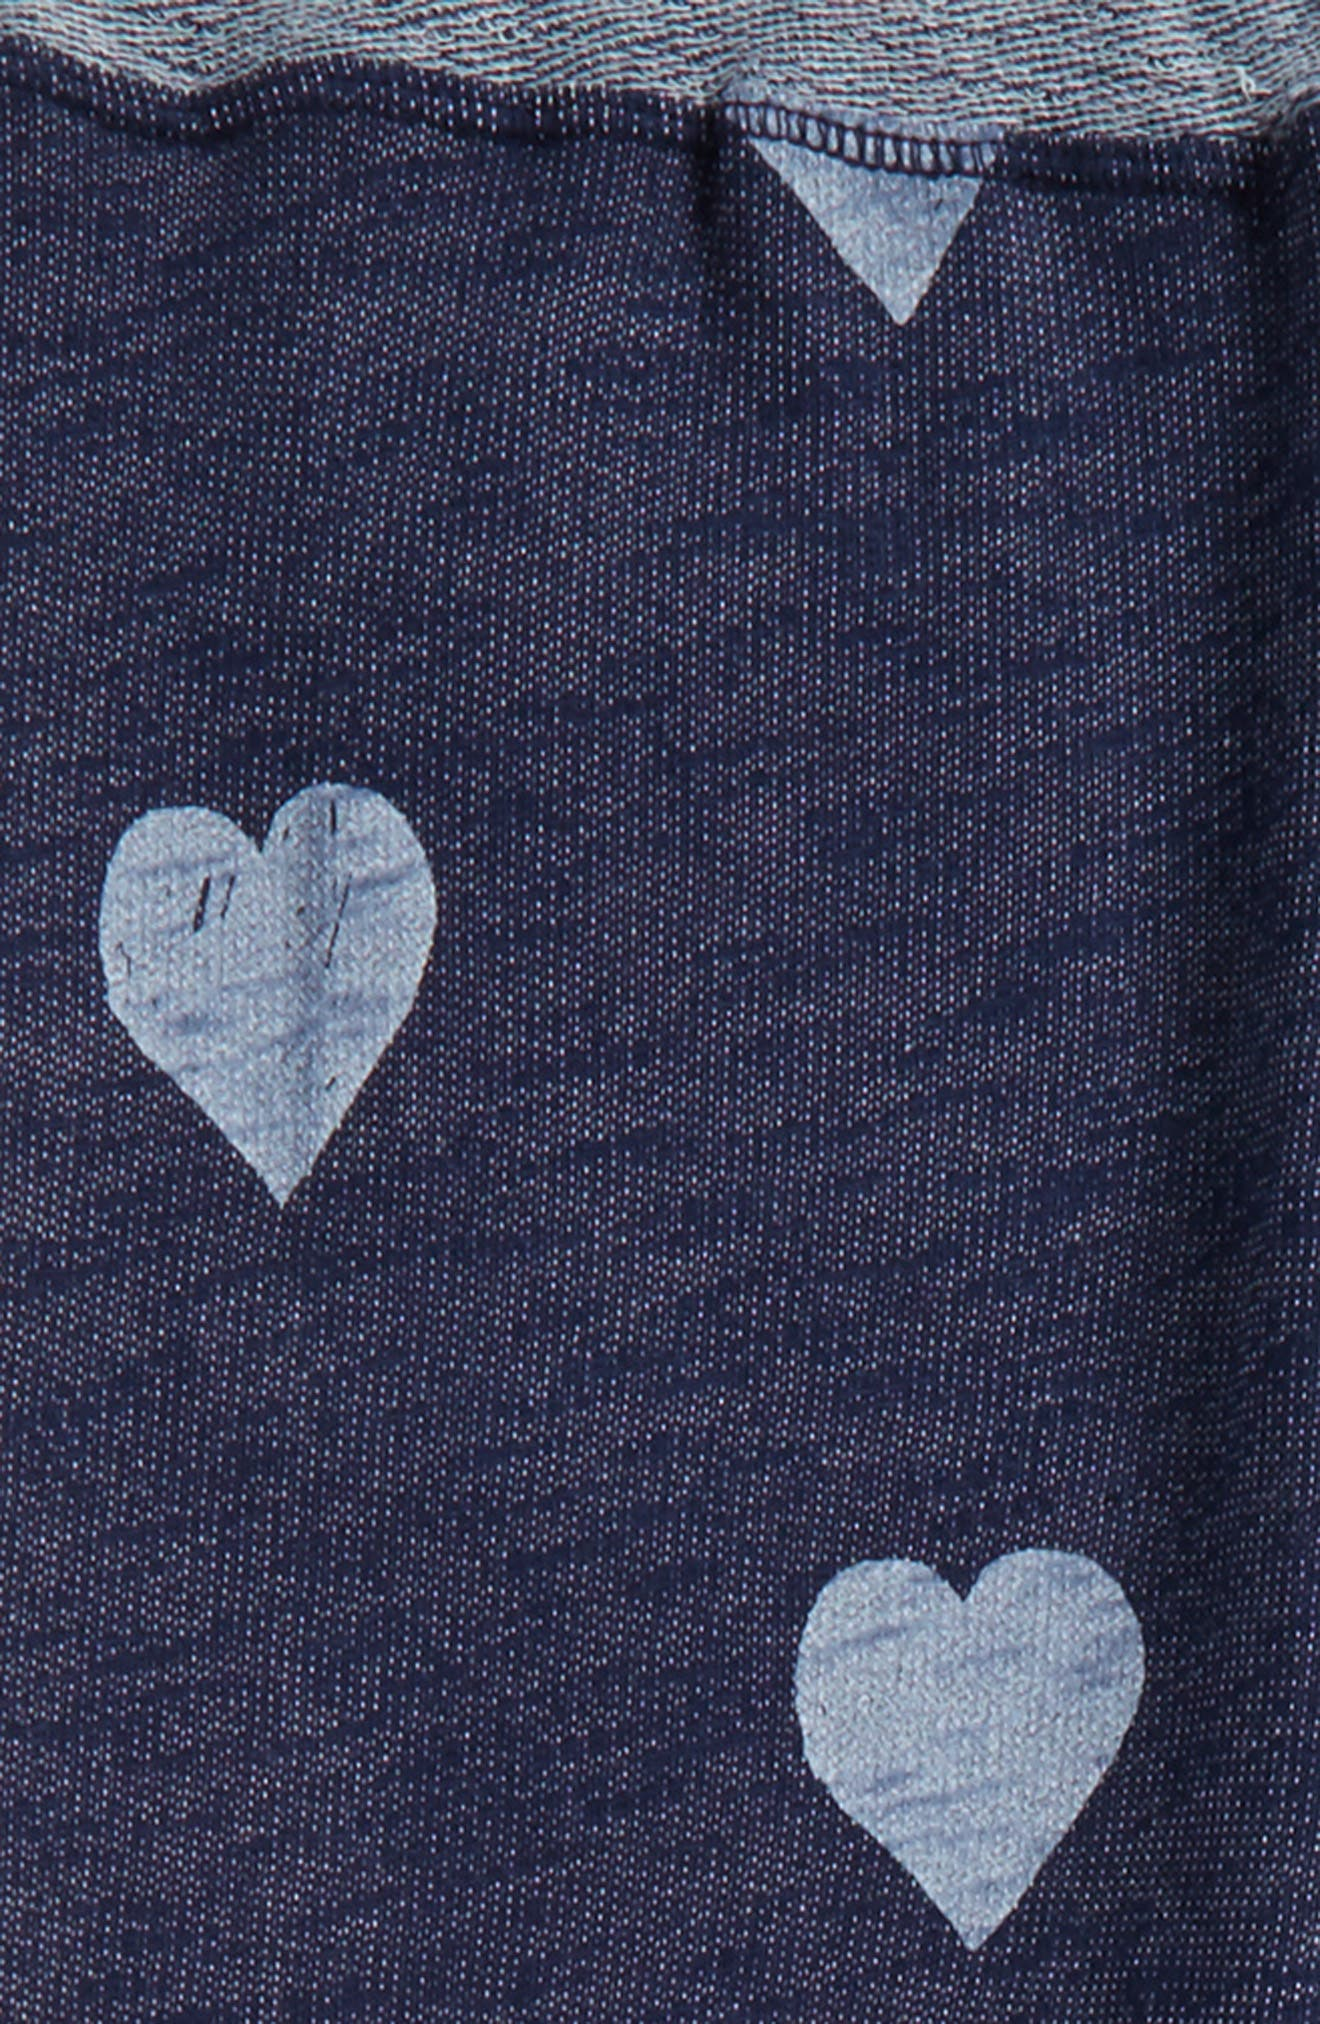 Heart Print Sweatpants,                             Alternate thumbnail 2, color,                             420